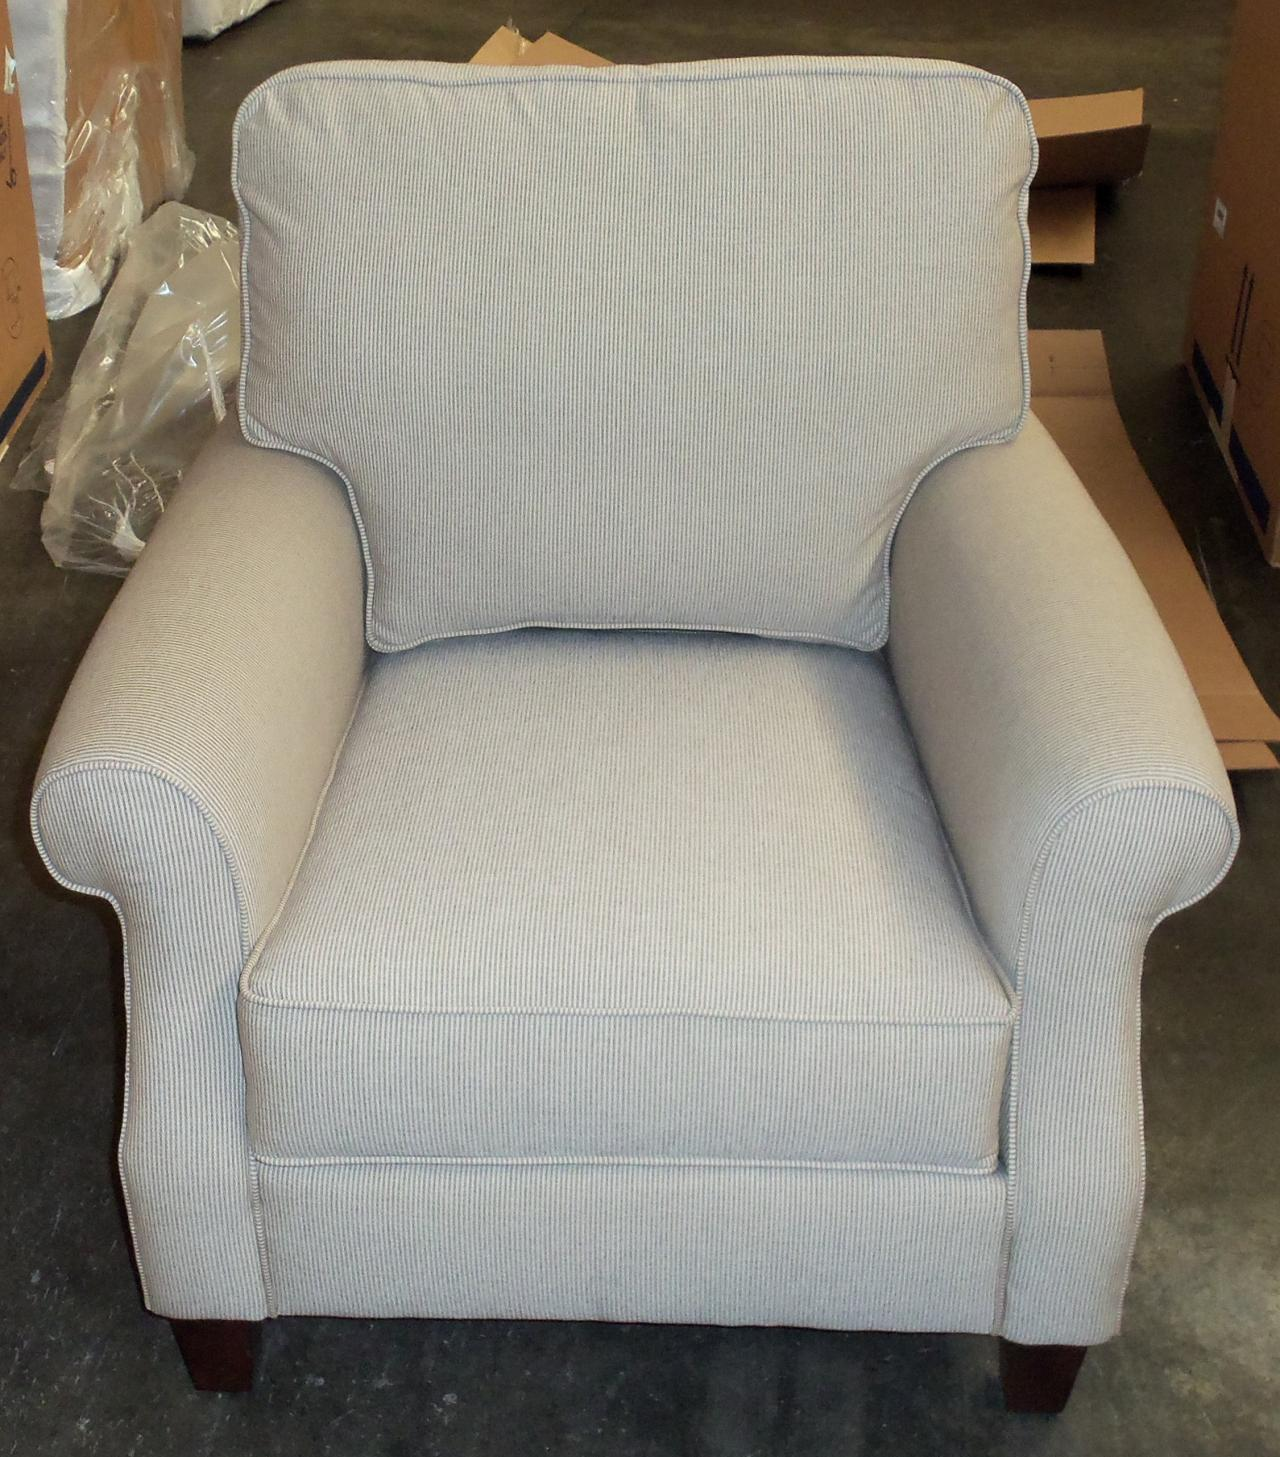 Chair Upholstery Cost Clayton Marcus Sofa Prices Clayton Marcus Sofa For A